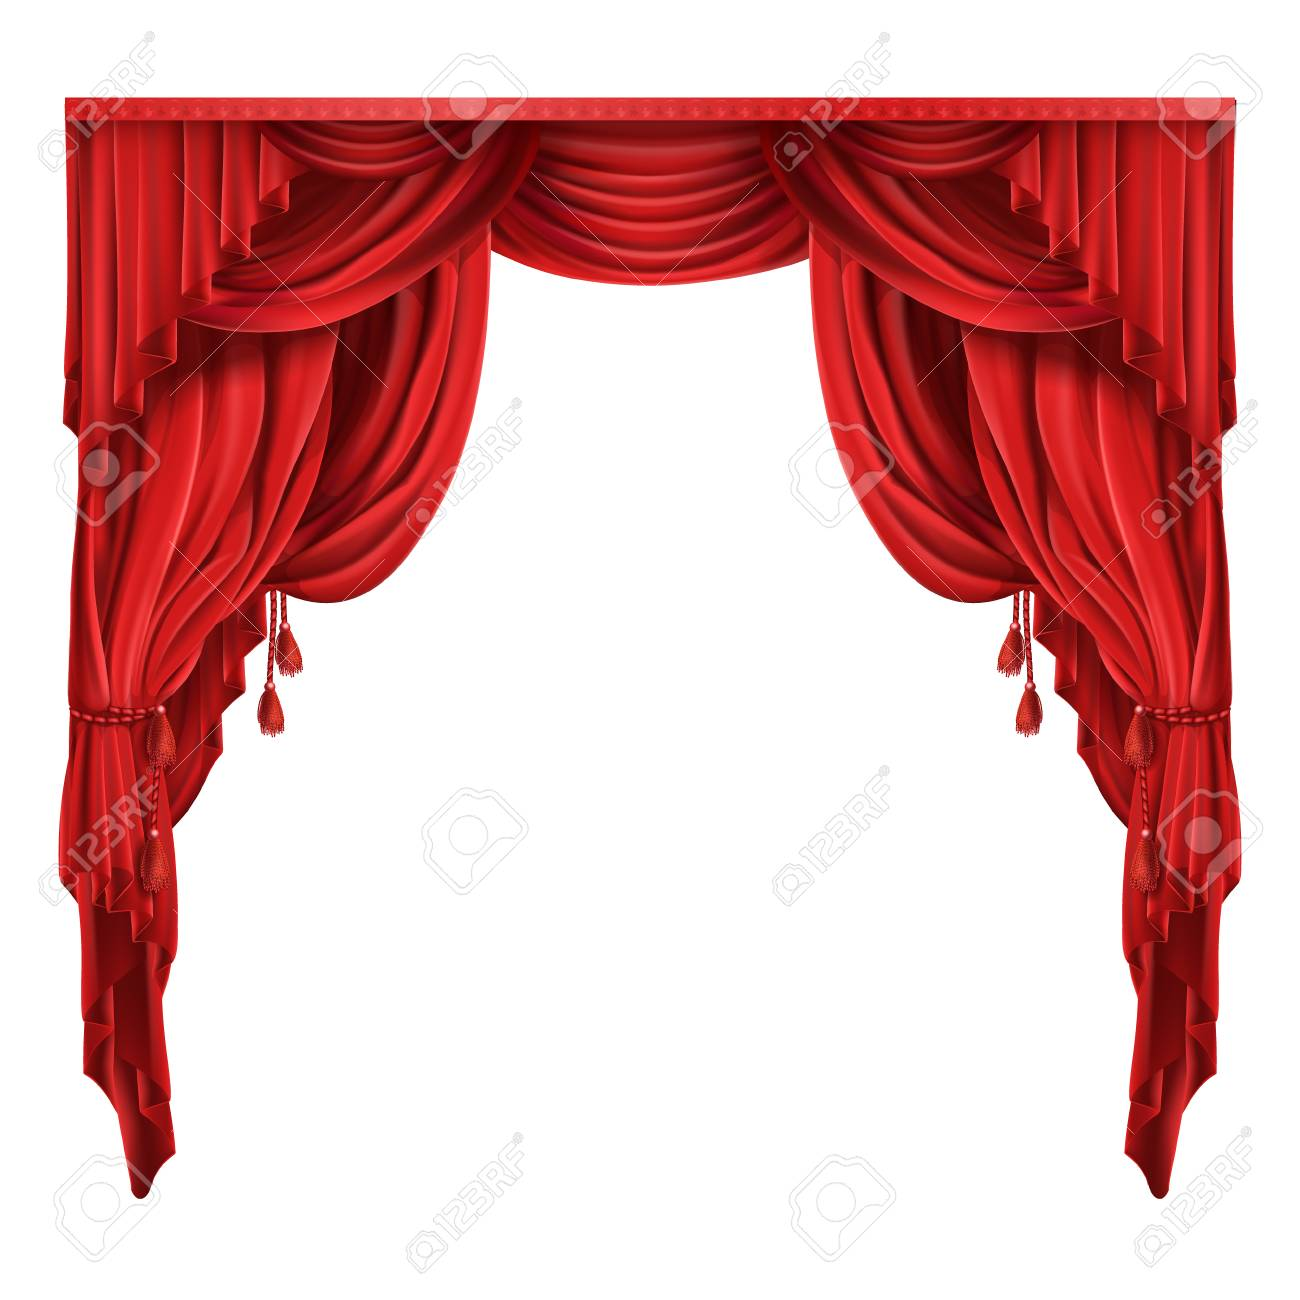 Heavy Red Curtains Or Drapes In Victorian Style Gathered With